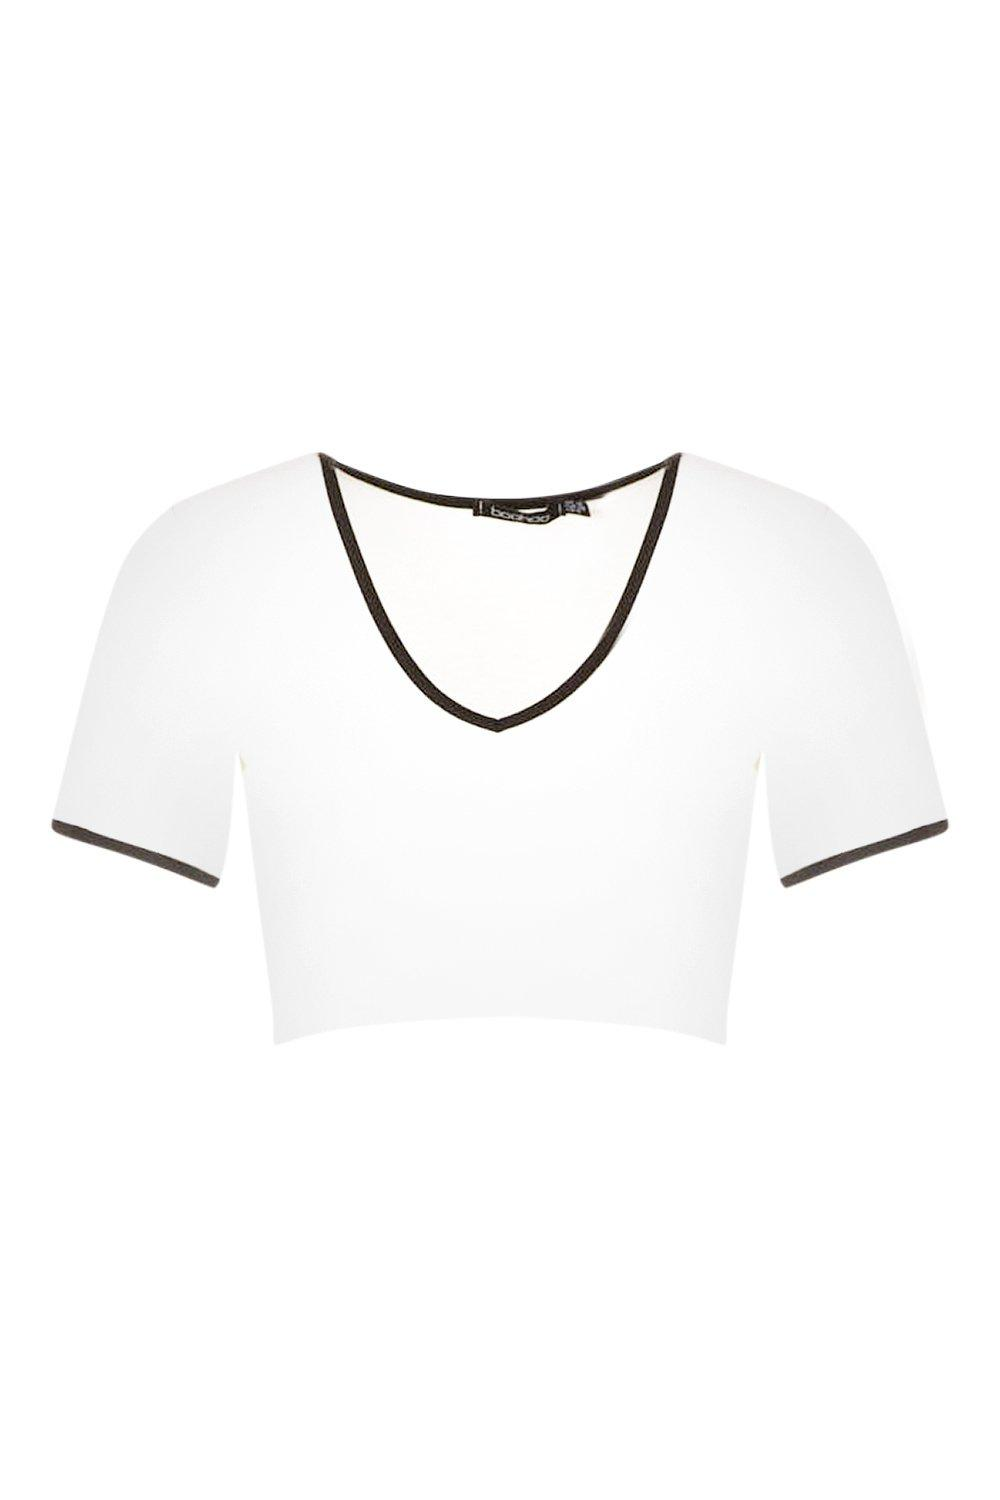 white Cap Crop Neck V Ringer Sleeve xXR1nXrwfq